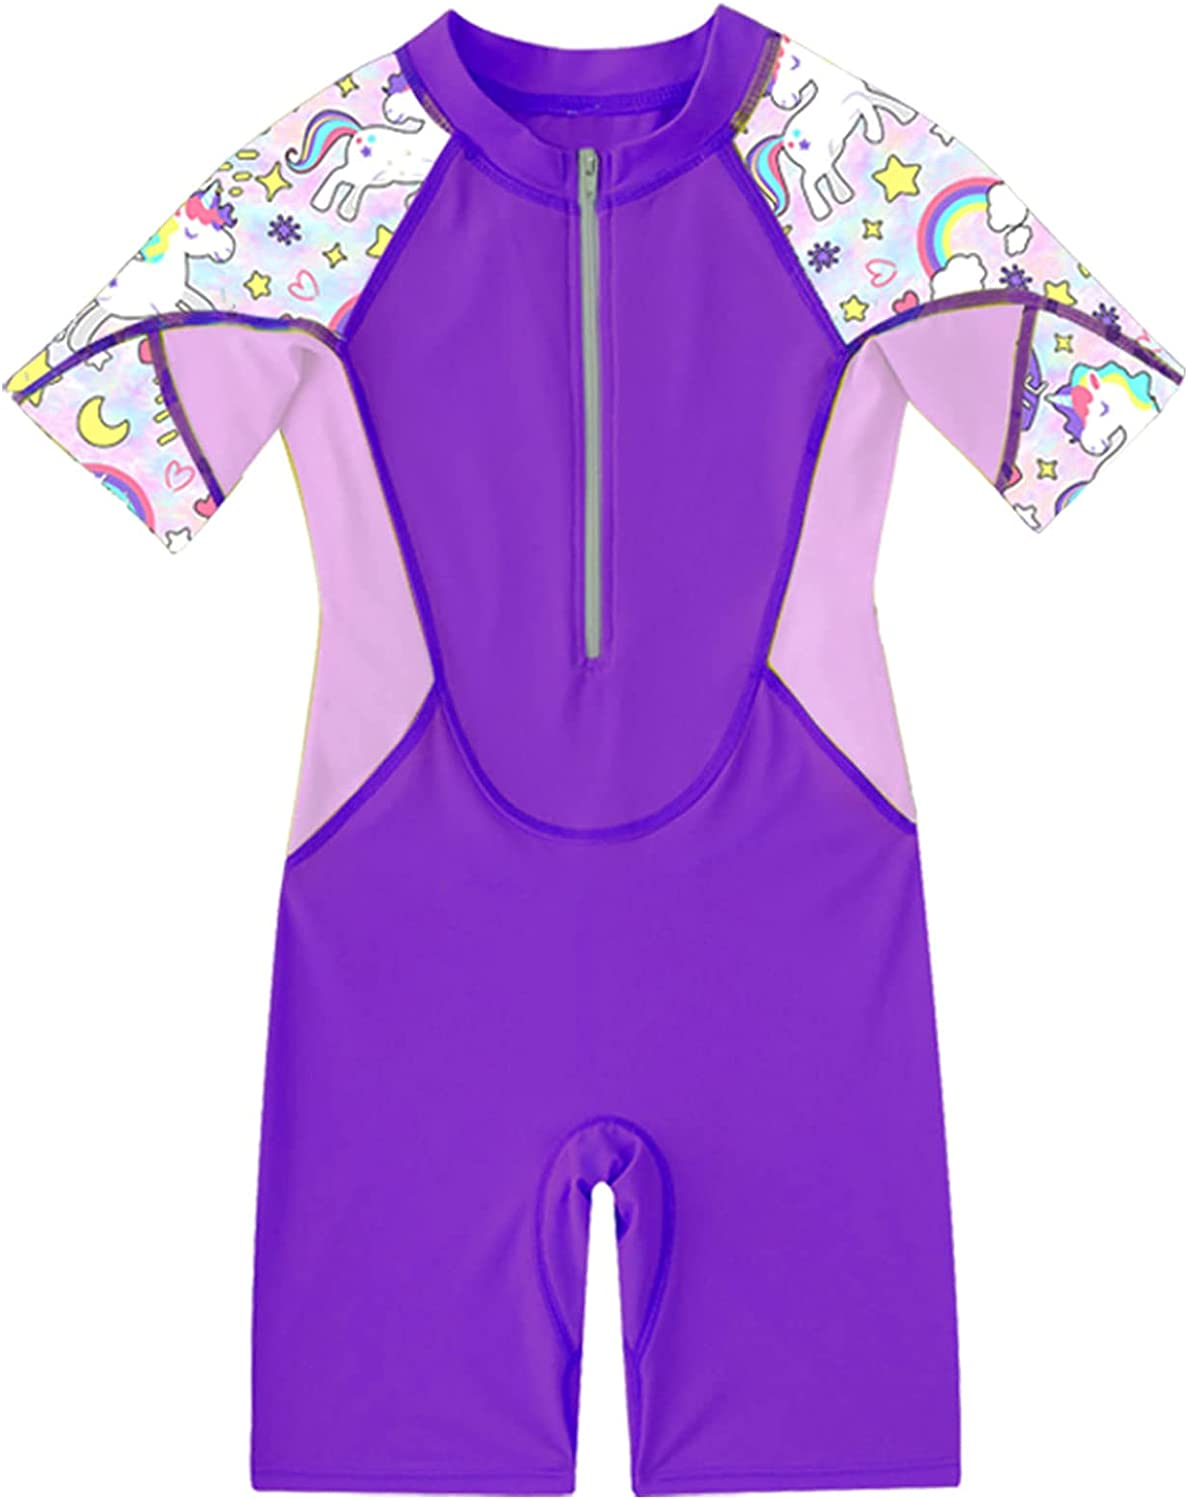 Haitryli Kids Girls Short Sleeves Zippered Shor Guard Shirt Rash Inventory cleanup selling sale Max 55% OFF